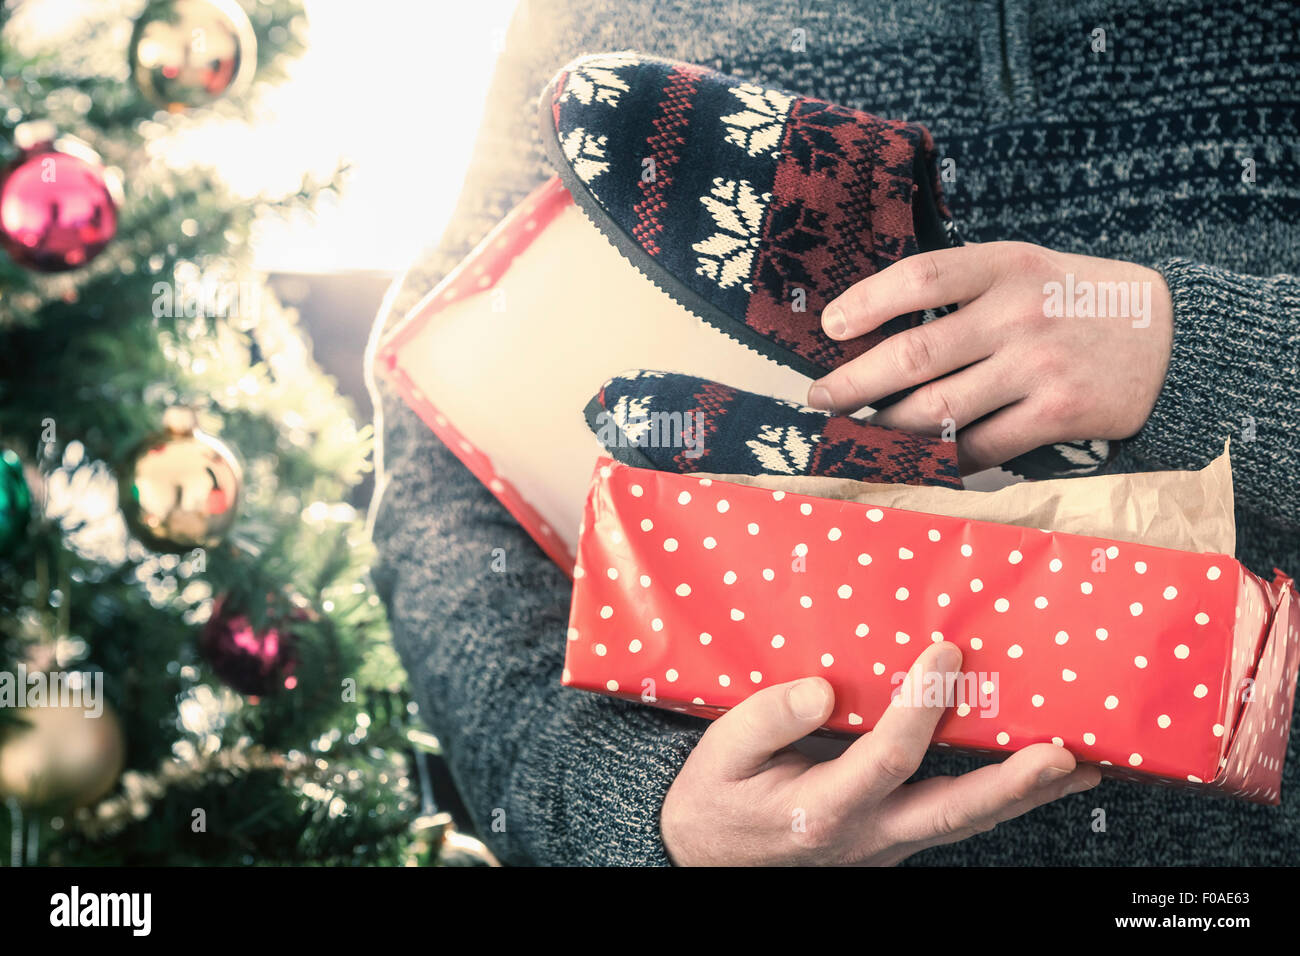 Person opening pair of slippers - Stock Image